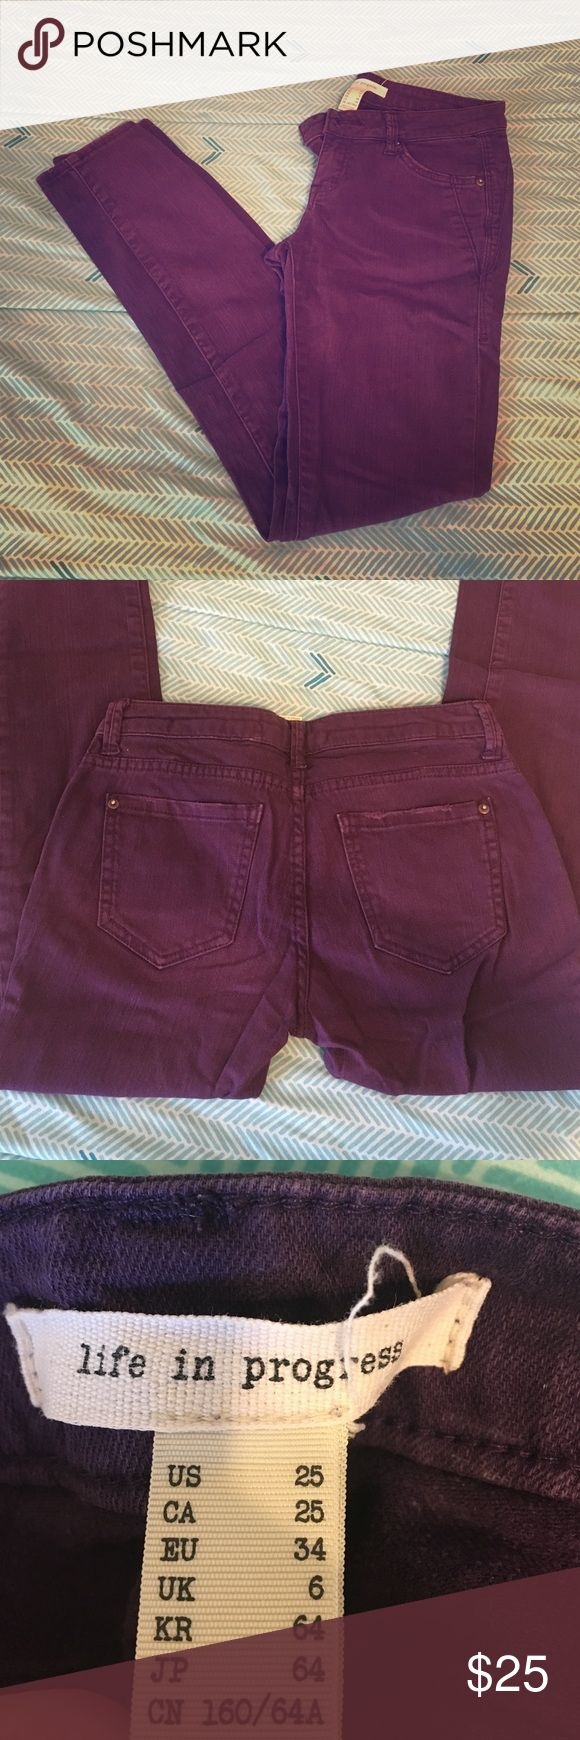 """Forever 21 purple skinny jeans 25"""" Purple colored skinny jeans from Forever 21. 25"""" Forever 21 Jeans Skinny"""